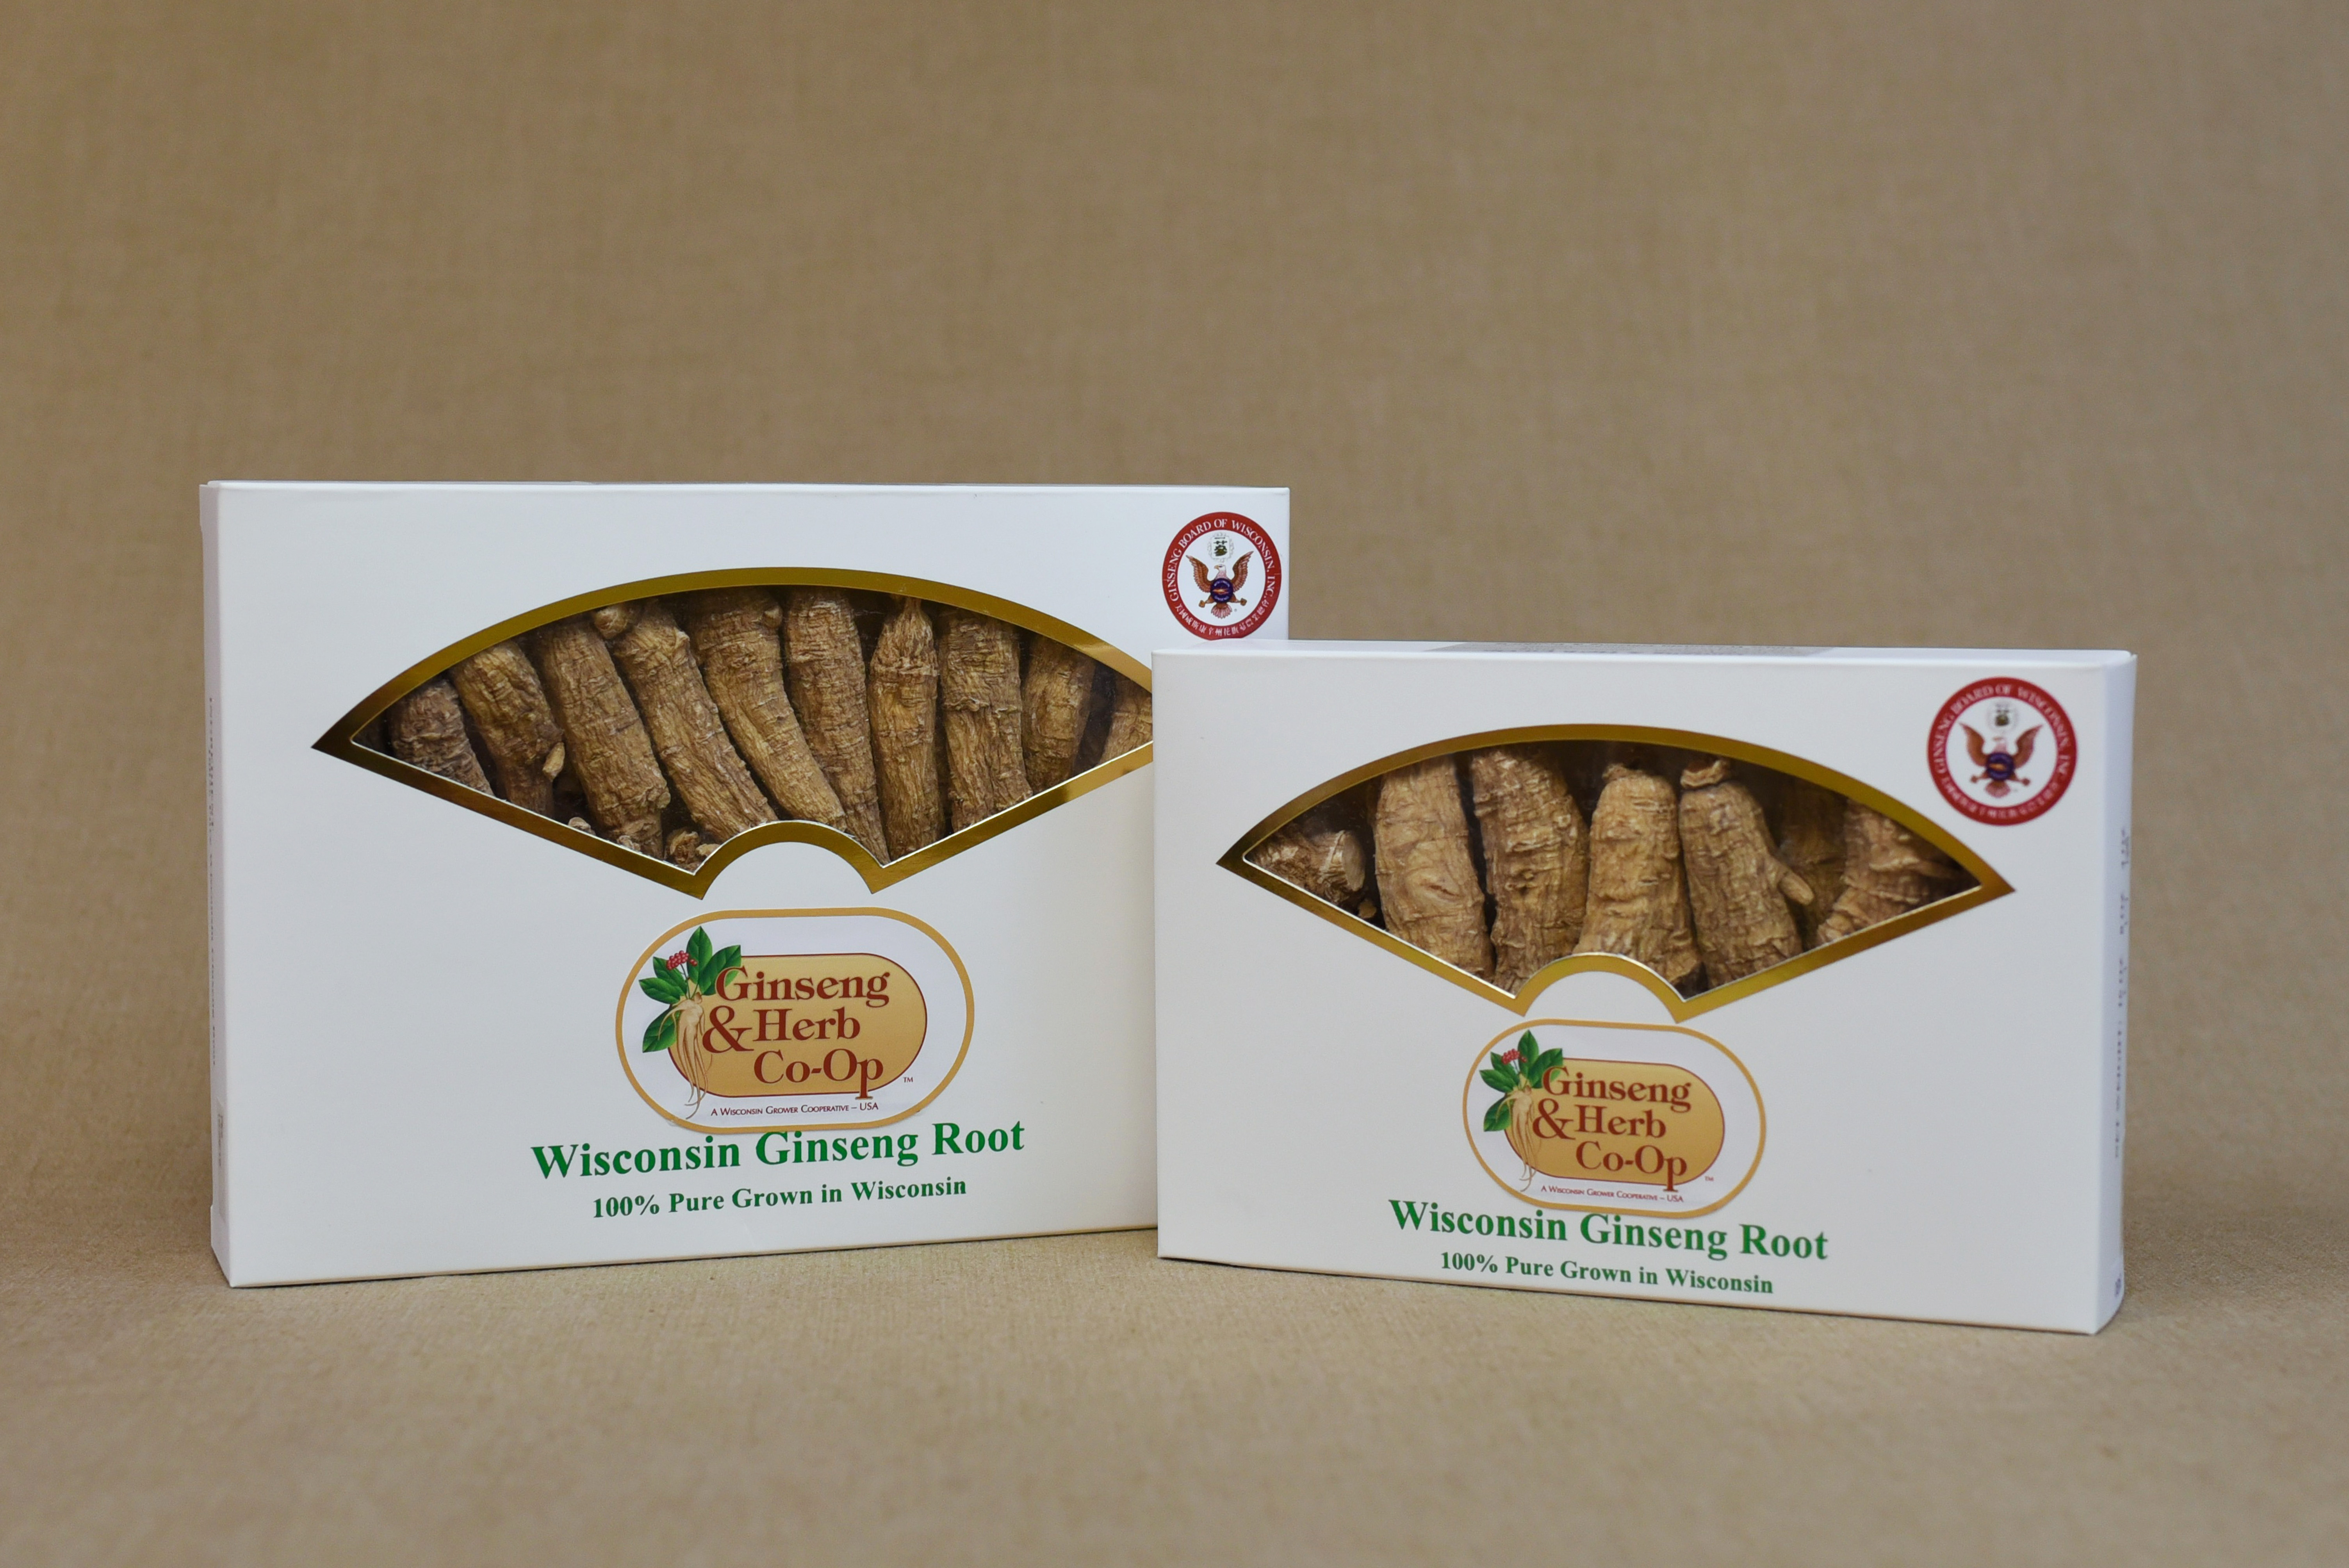 Buy Now! high quality Wisconsin Ginseng roots in Racine, WI